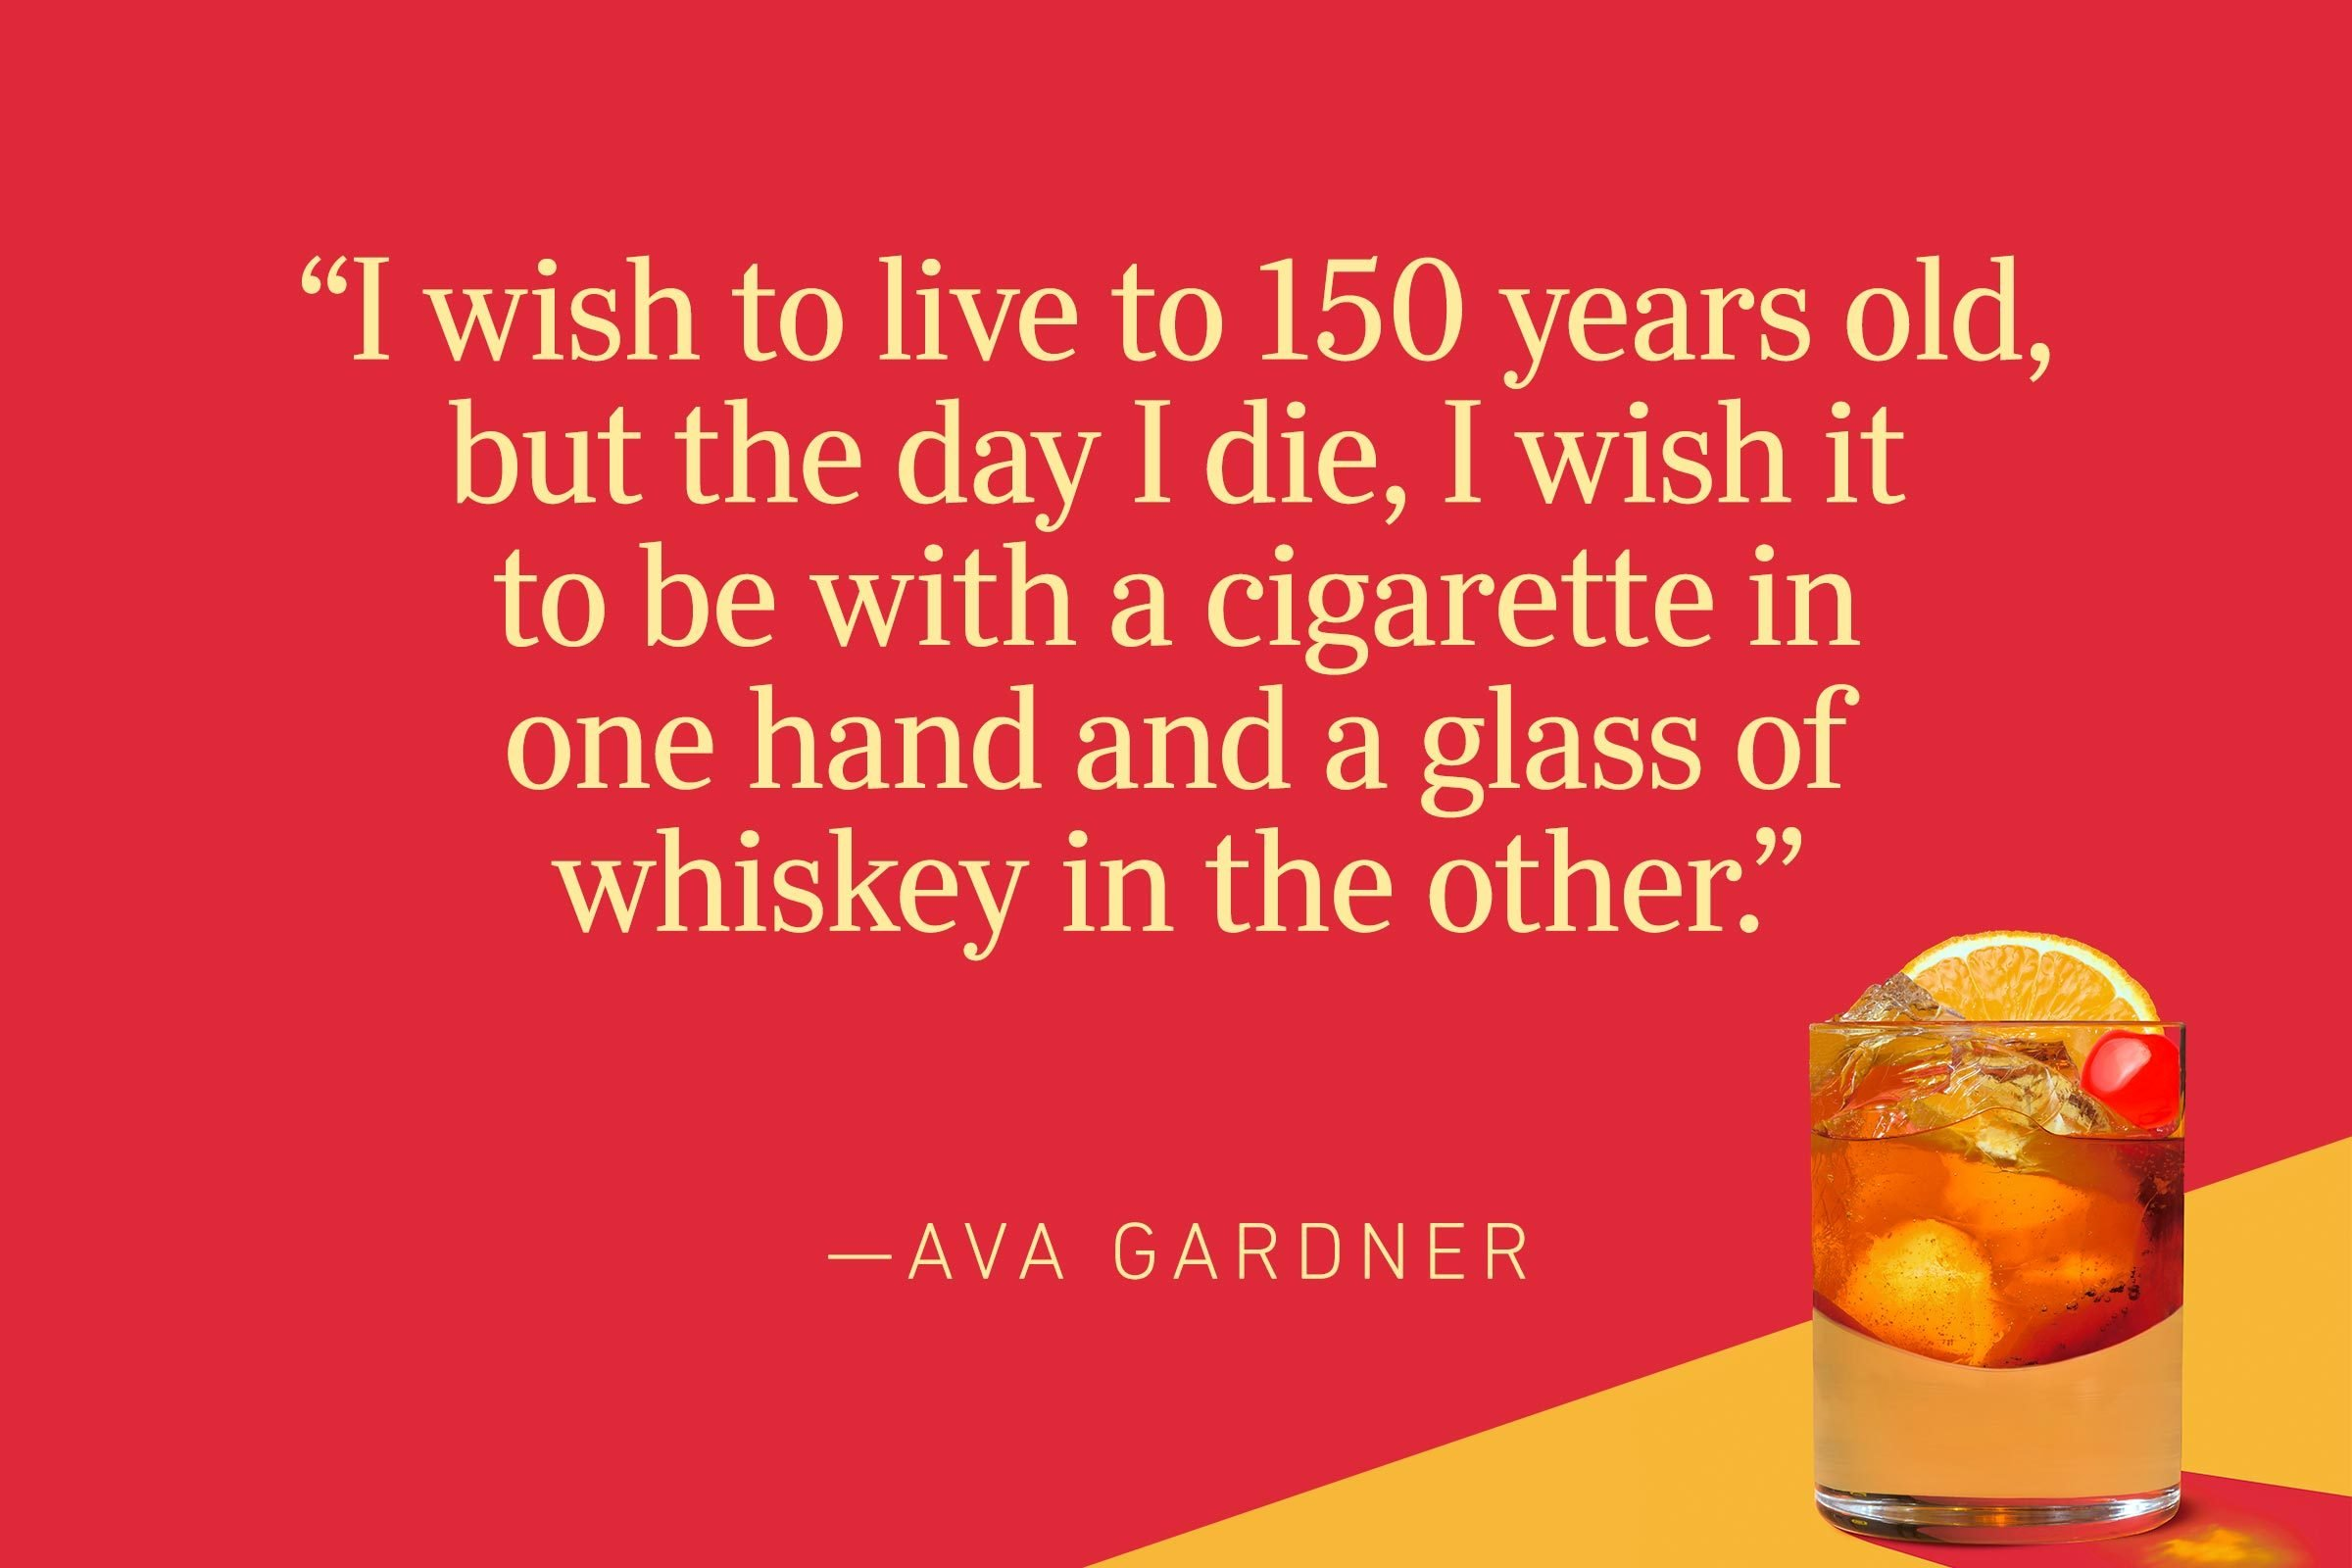 """""""I wish to live to 150 years old, but the day I die, I wish it to be with a cigarette in one hand and a glass of whiskey in the other.""""—Ava Gardner"""